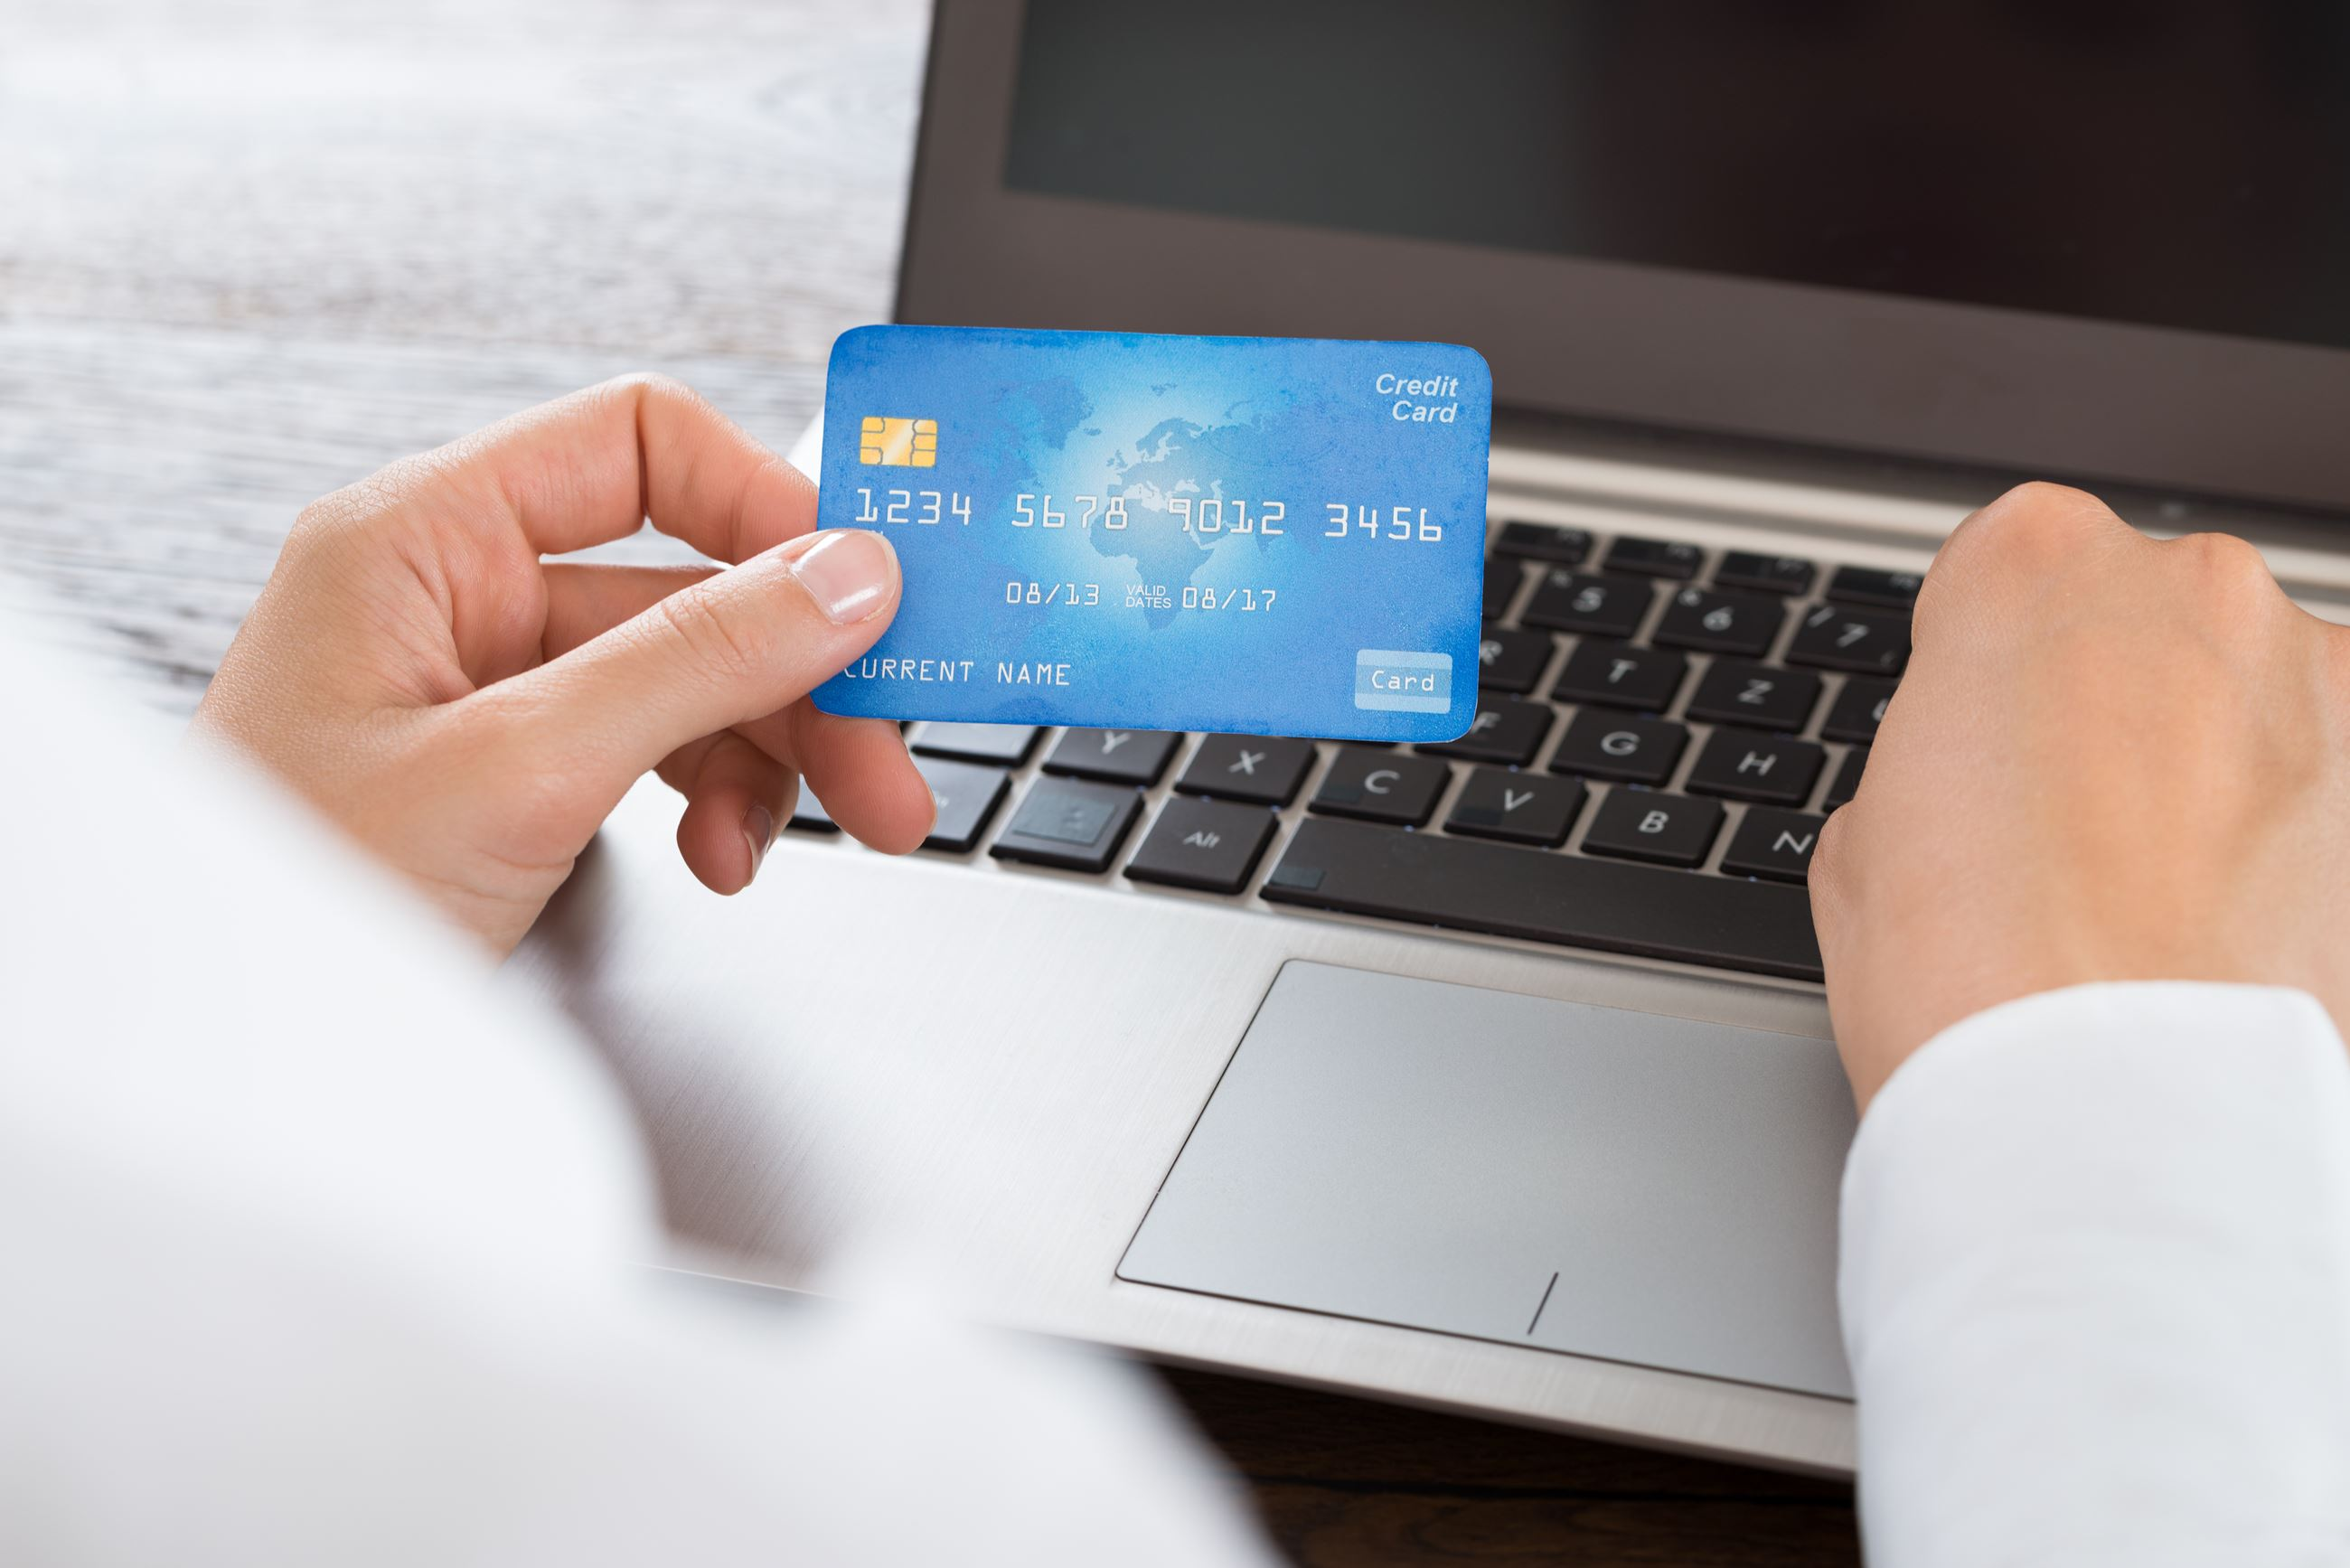 online municipal payment website for Credit Card payments